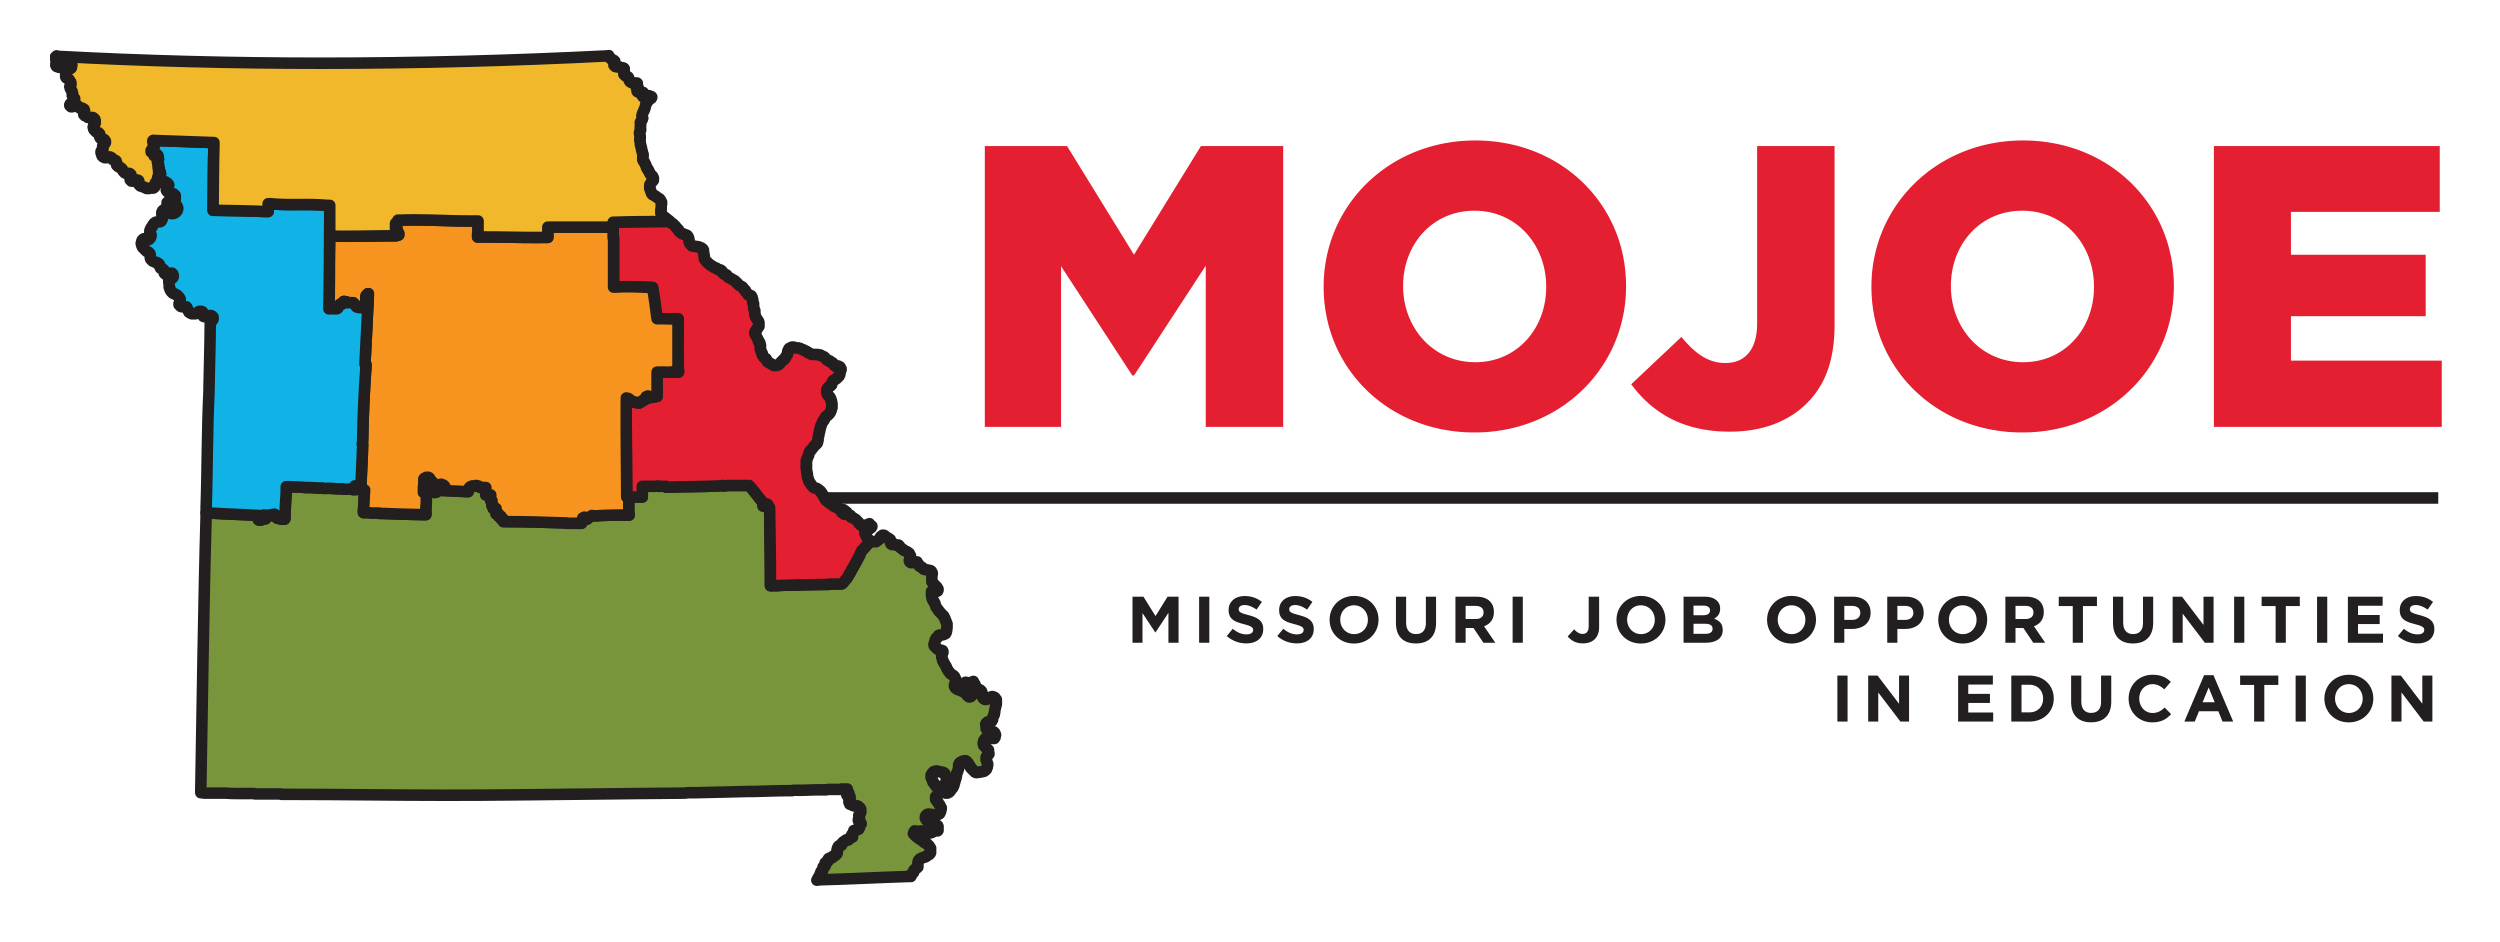 MOJOE Missouri Job Opportunities in Education Logo